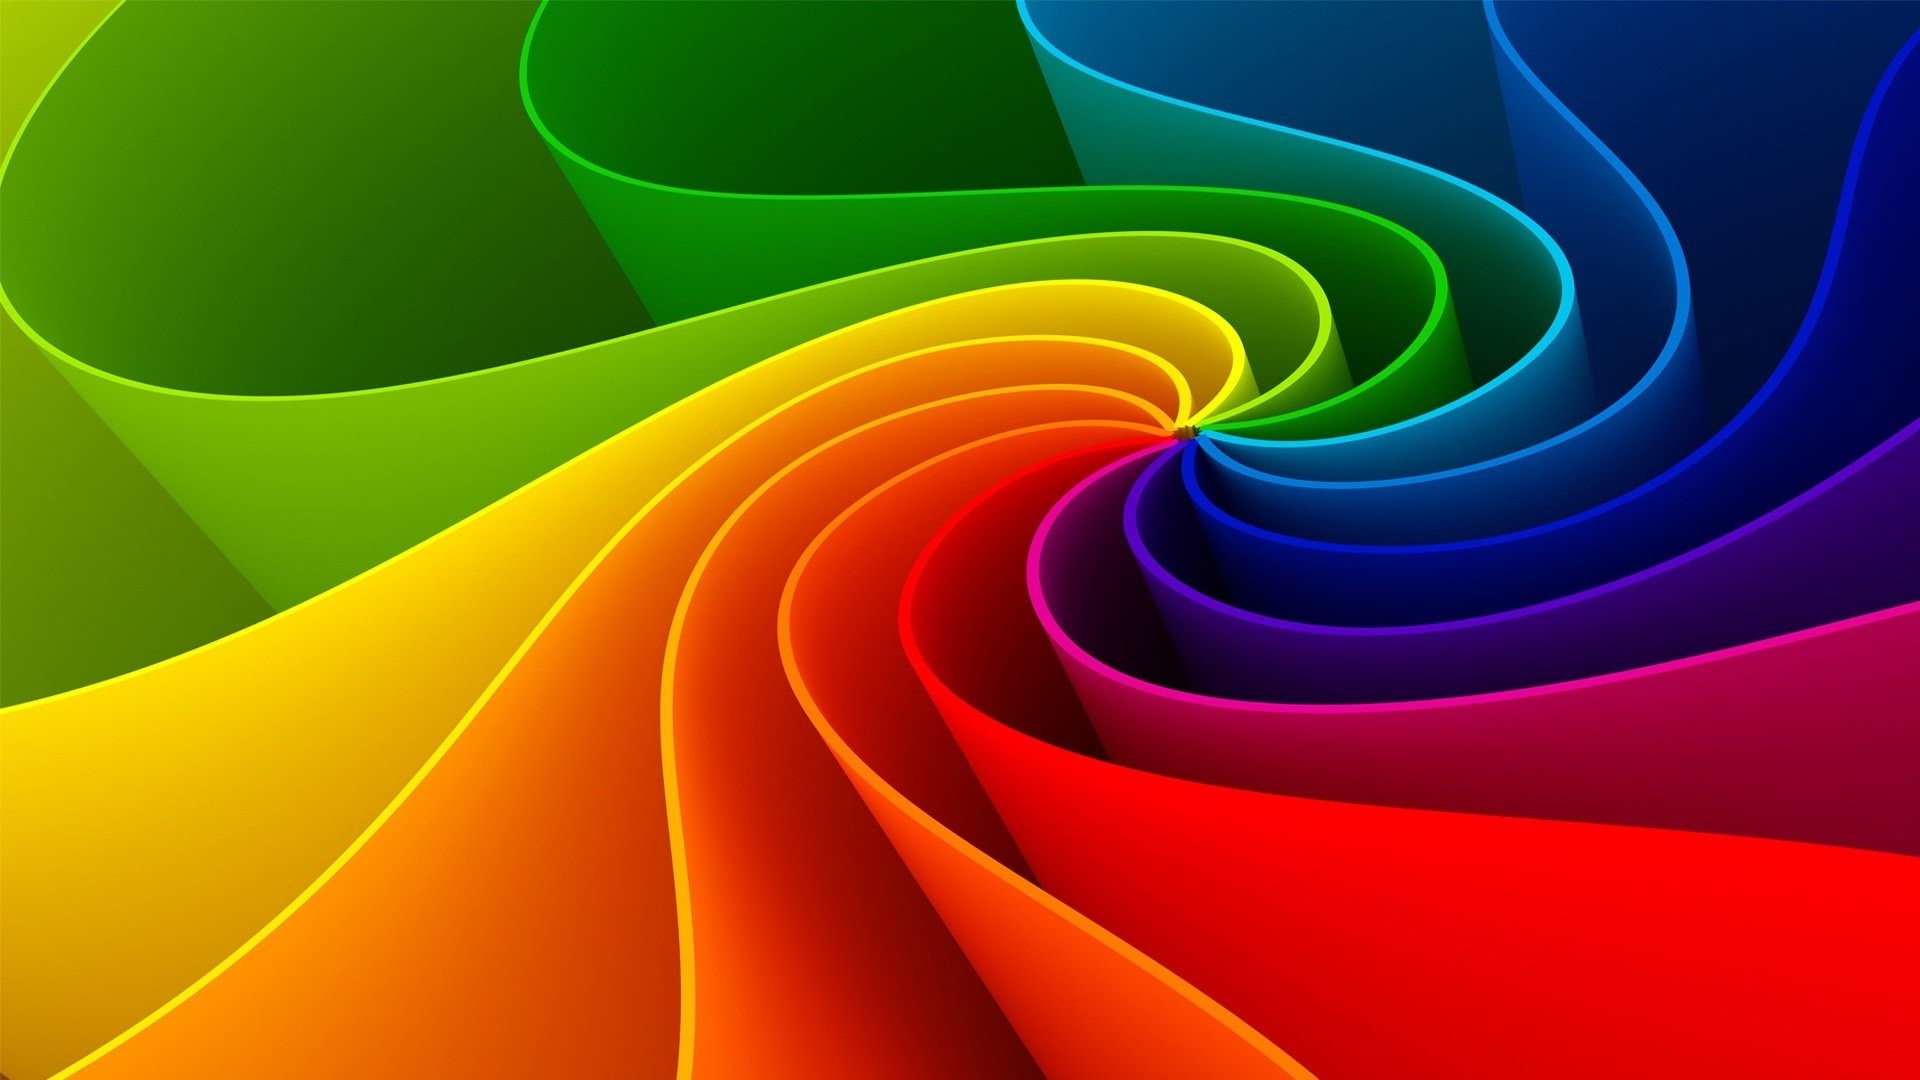 Free 19 Hd Rainbow Background Images And Wallpapers In